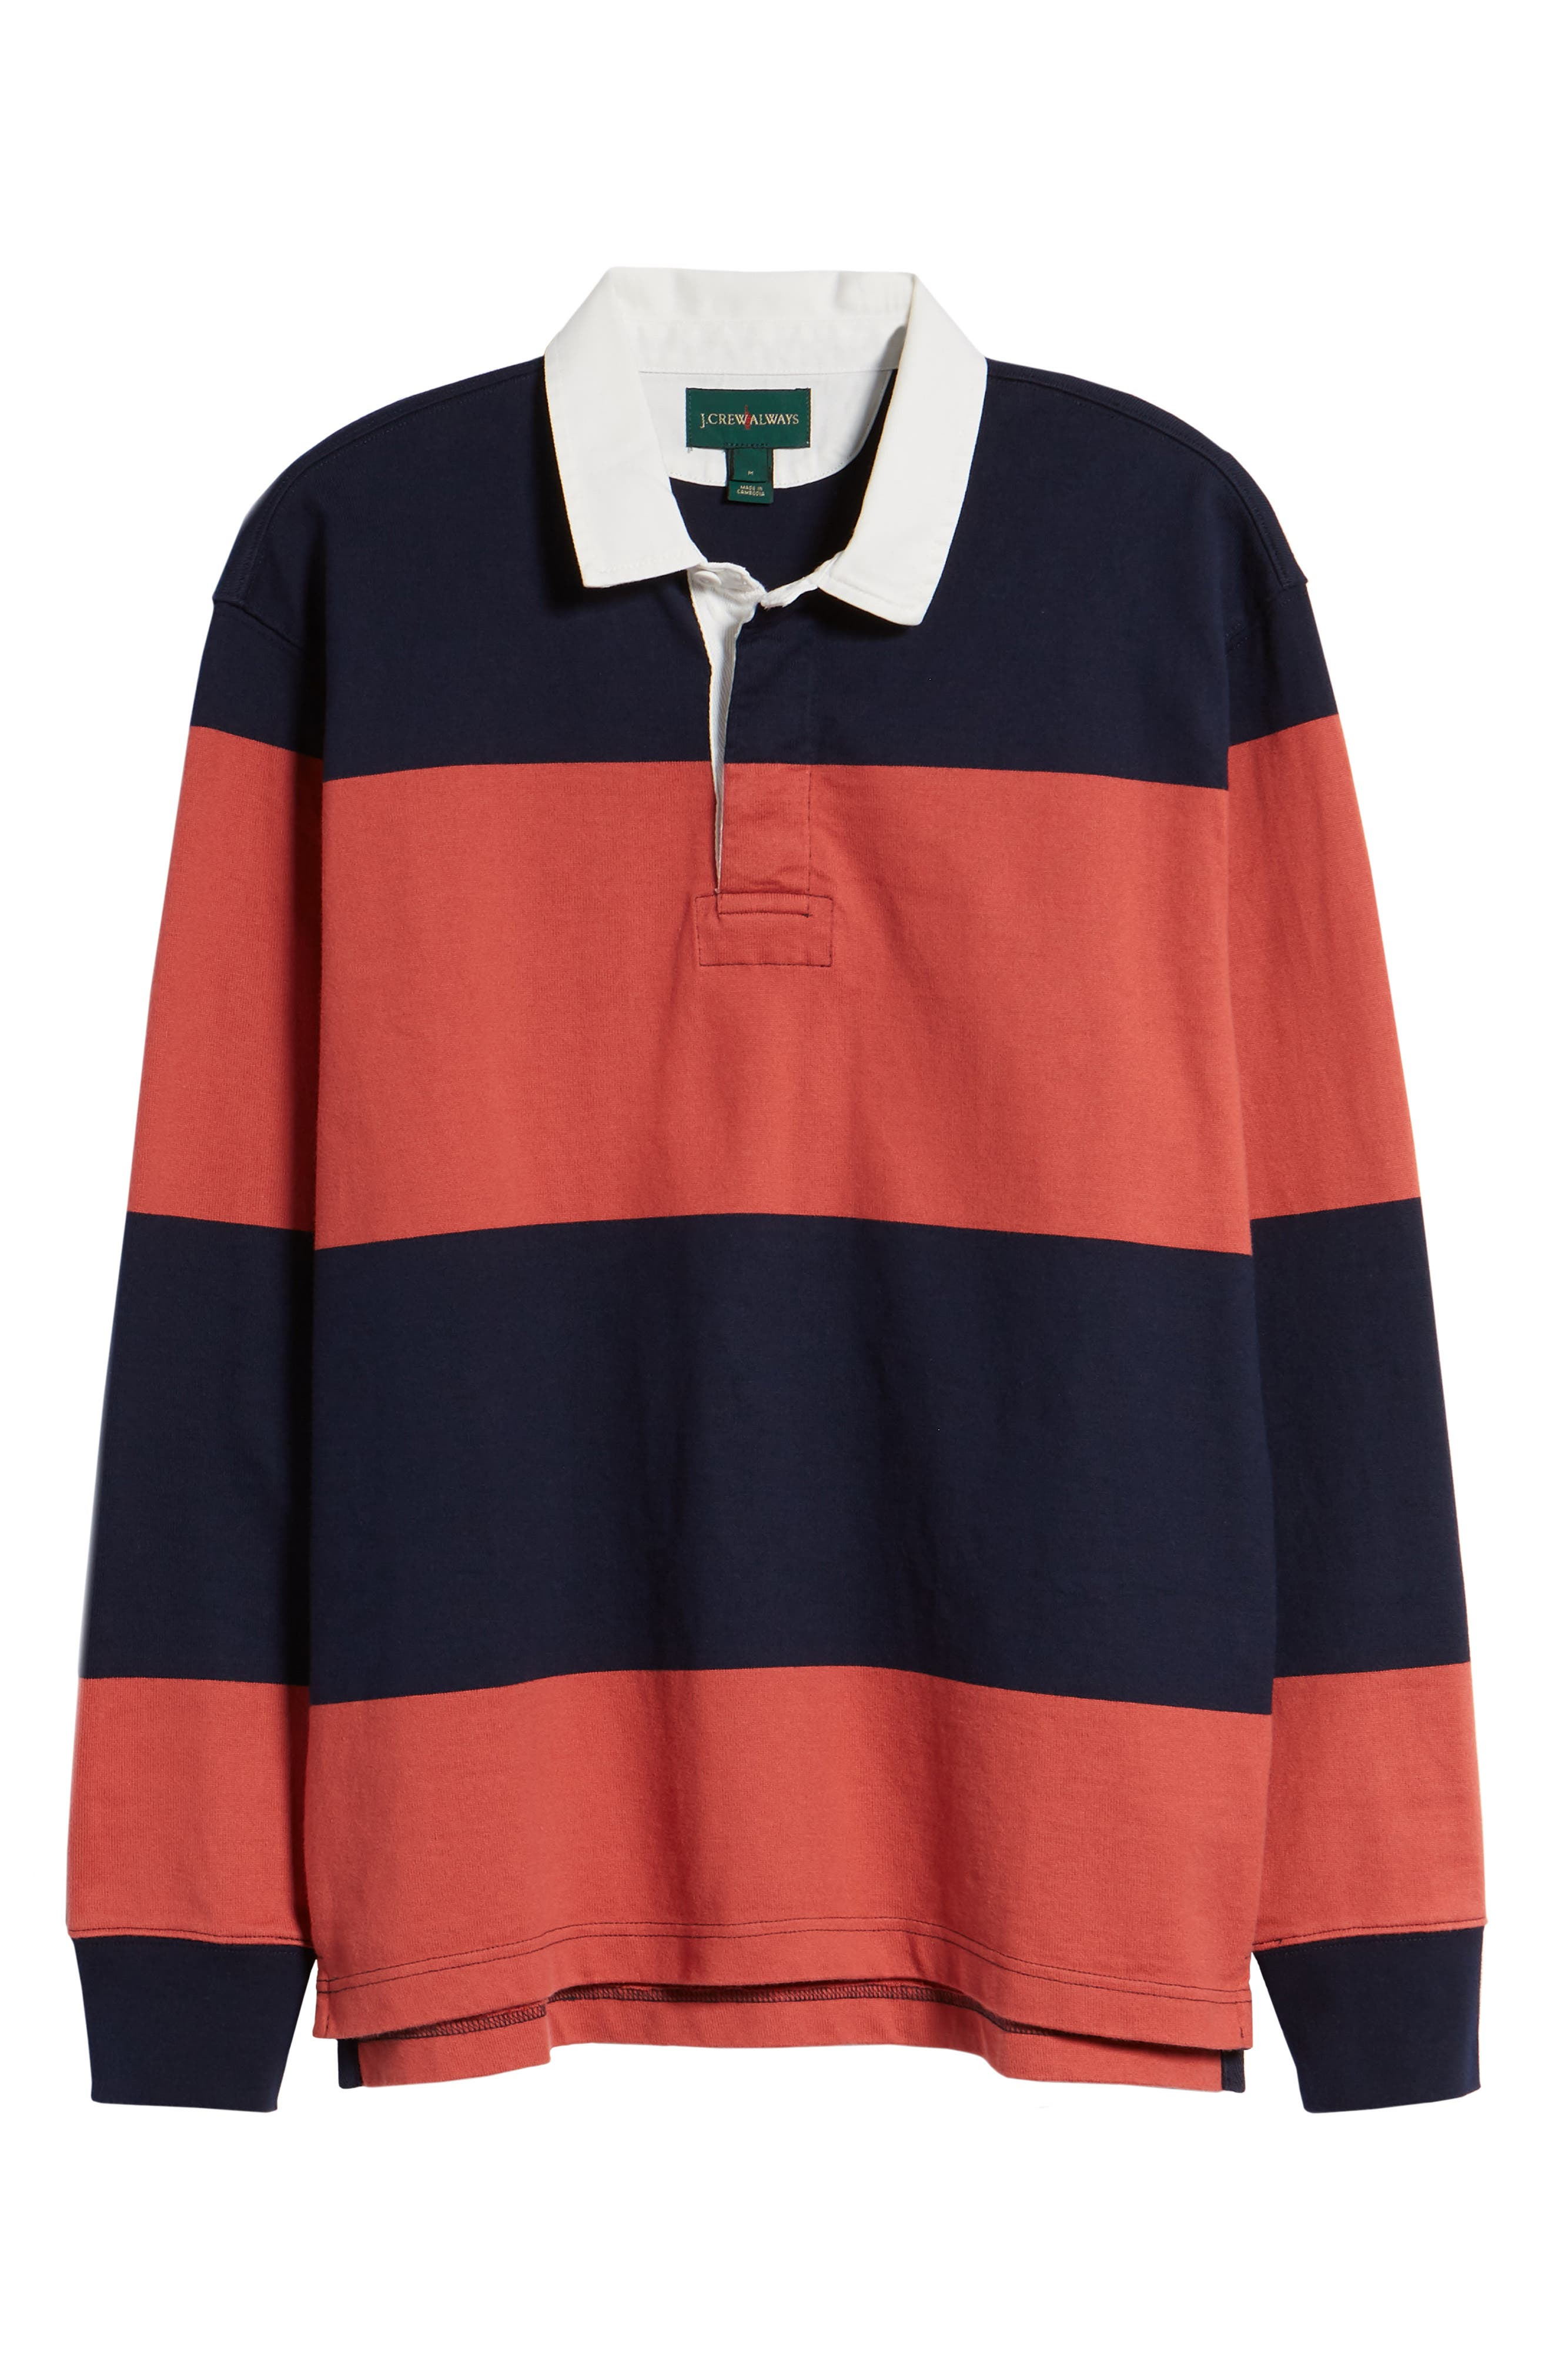 1984 Stripe Rugby Shirt,                             Alternate thumbnail 6, color,                             Old Red